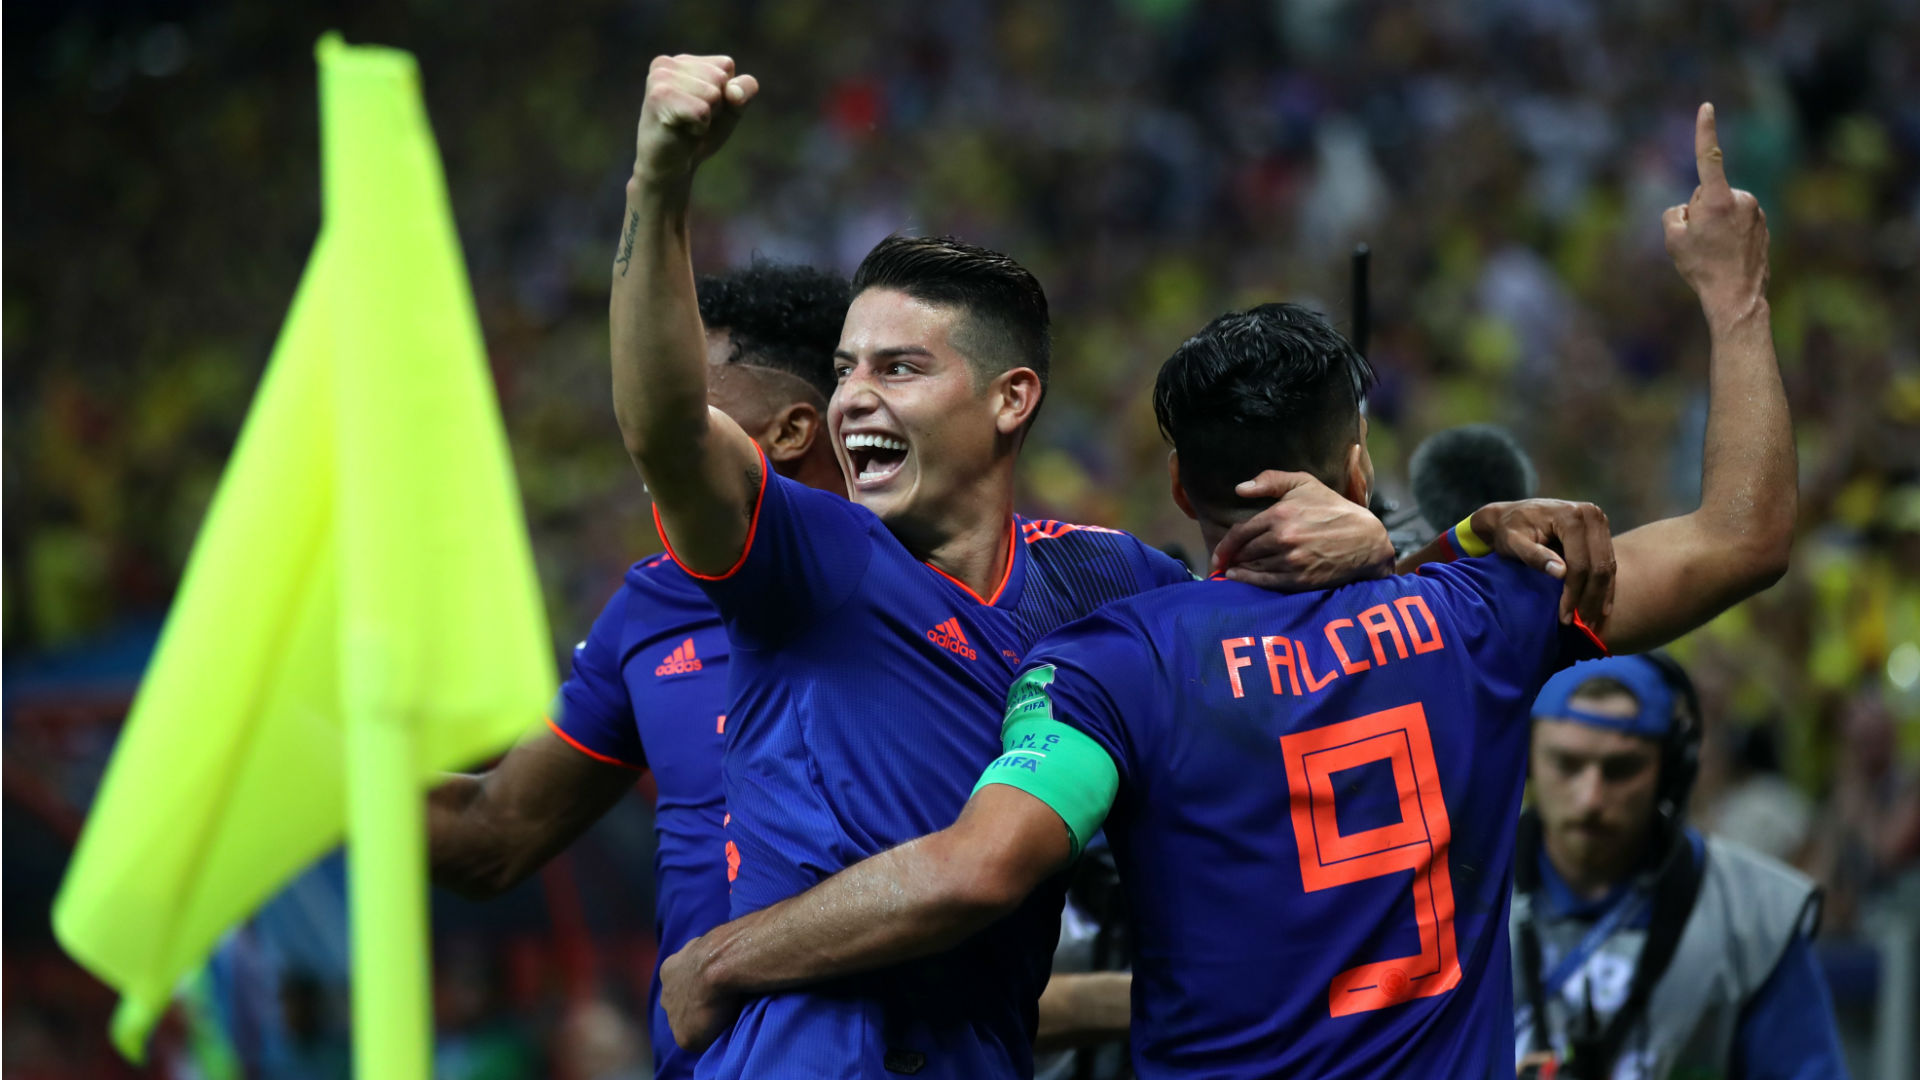 Radamel Falcao James Rodriguez Colombia World Cup 2018